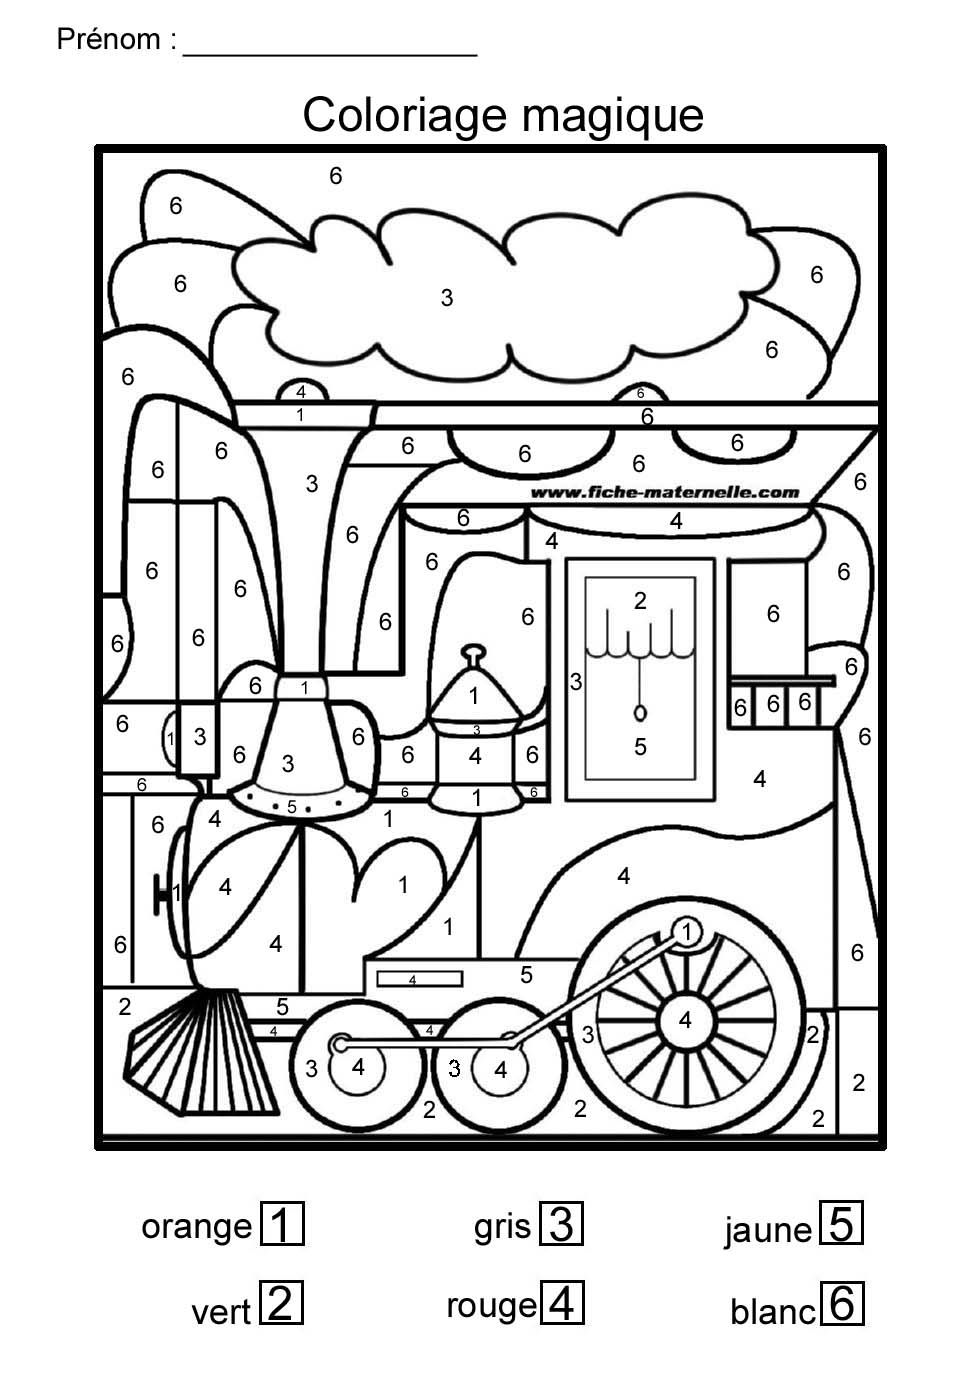 Coloriage magique pour moyenne section et grande section for Coloriage magique table x 6